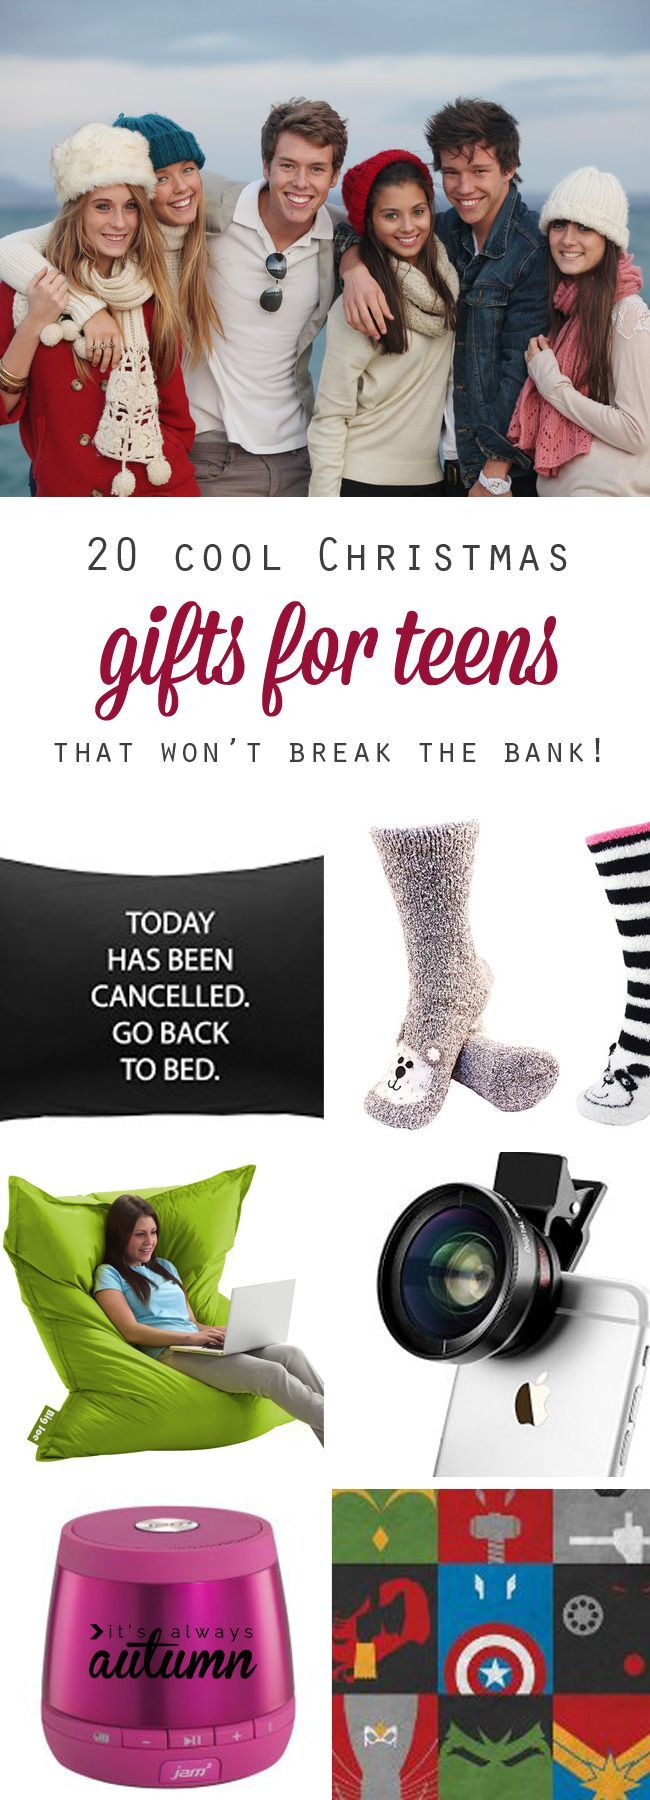 Christmas Teenage Party Ideas Part - 36: Best Christmas Gift Ideas For Teens